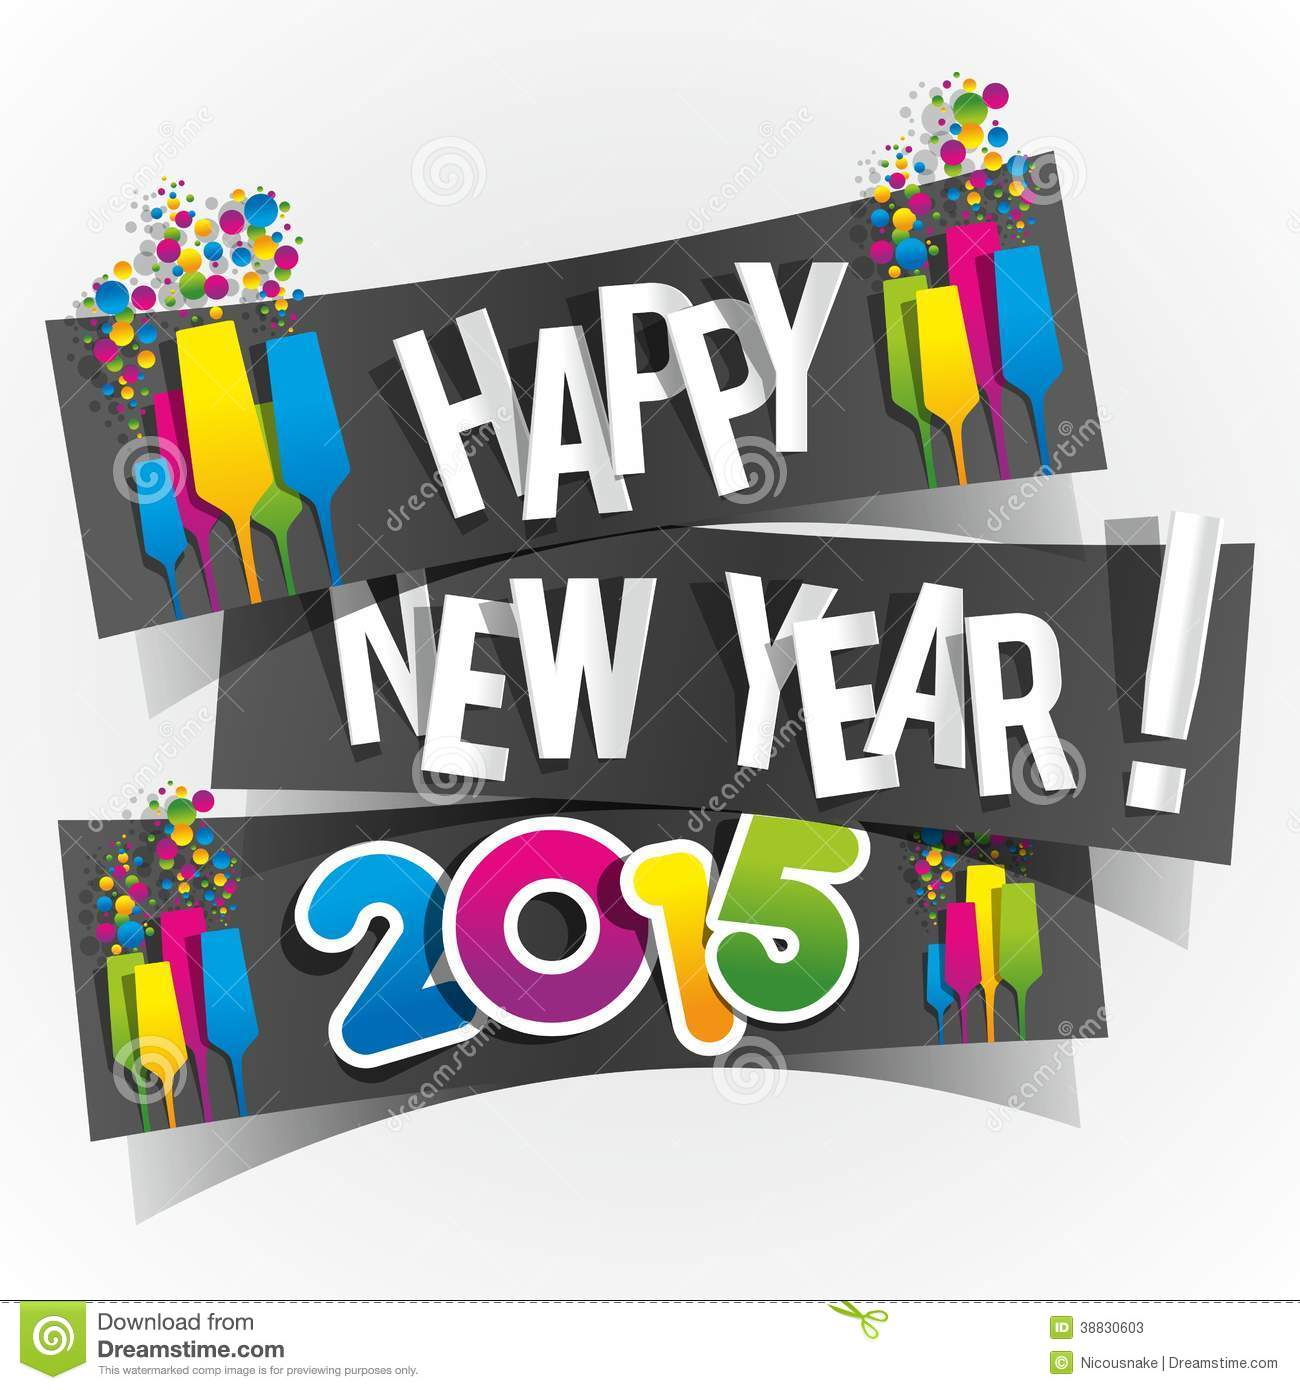 Happy new year 2015 greeting card stock vector illustration of happy new year 2015 greeting card m4hsunfo